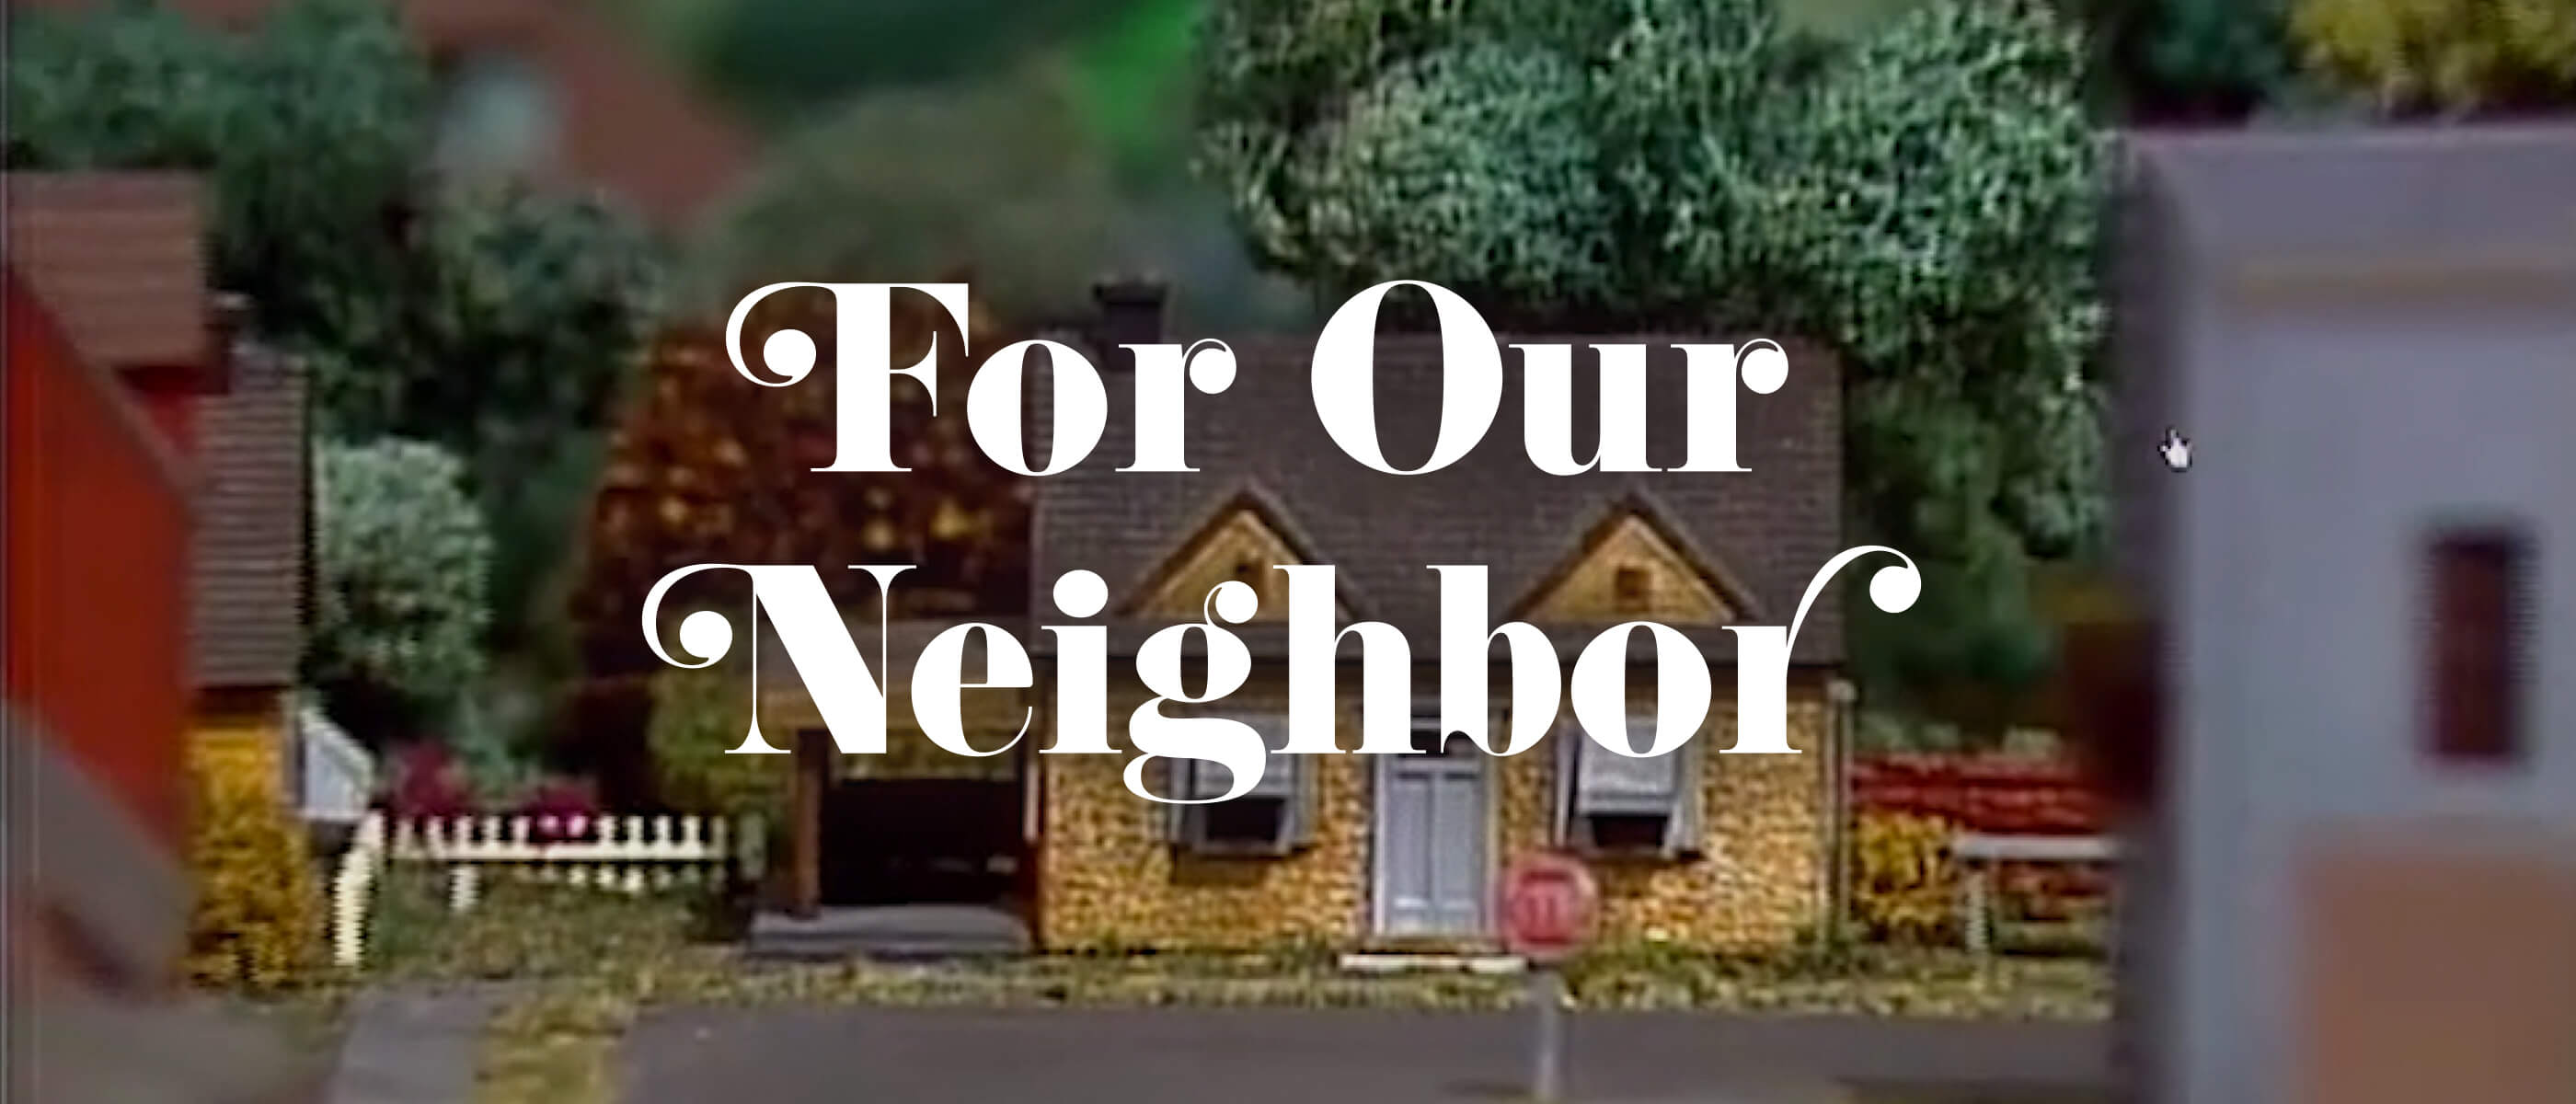 For Our Neighbor